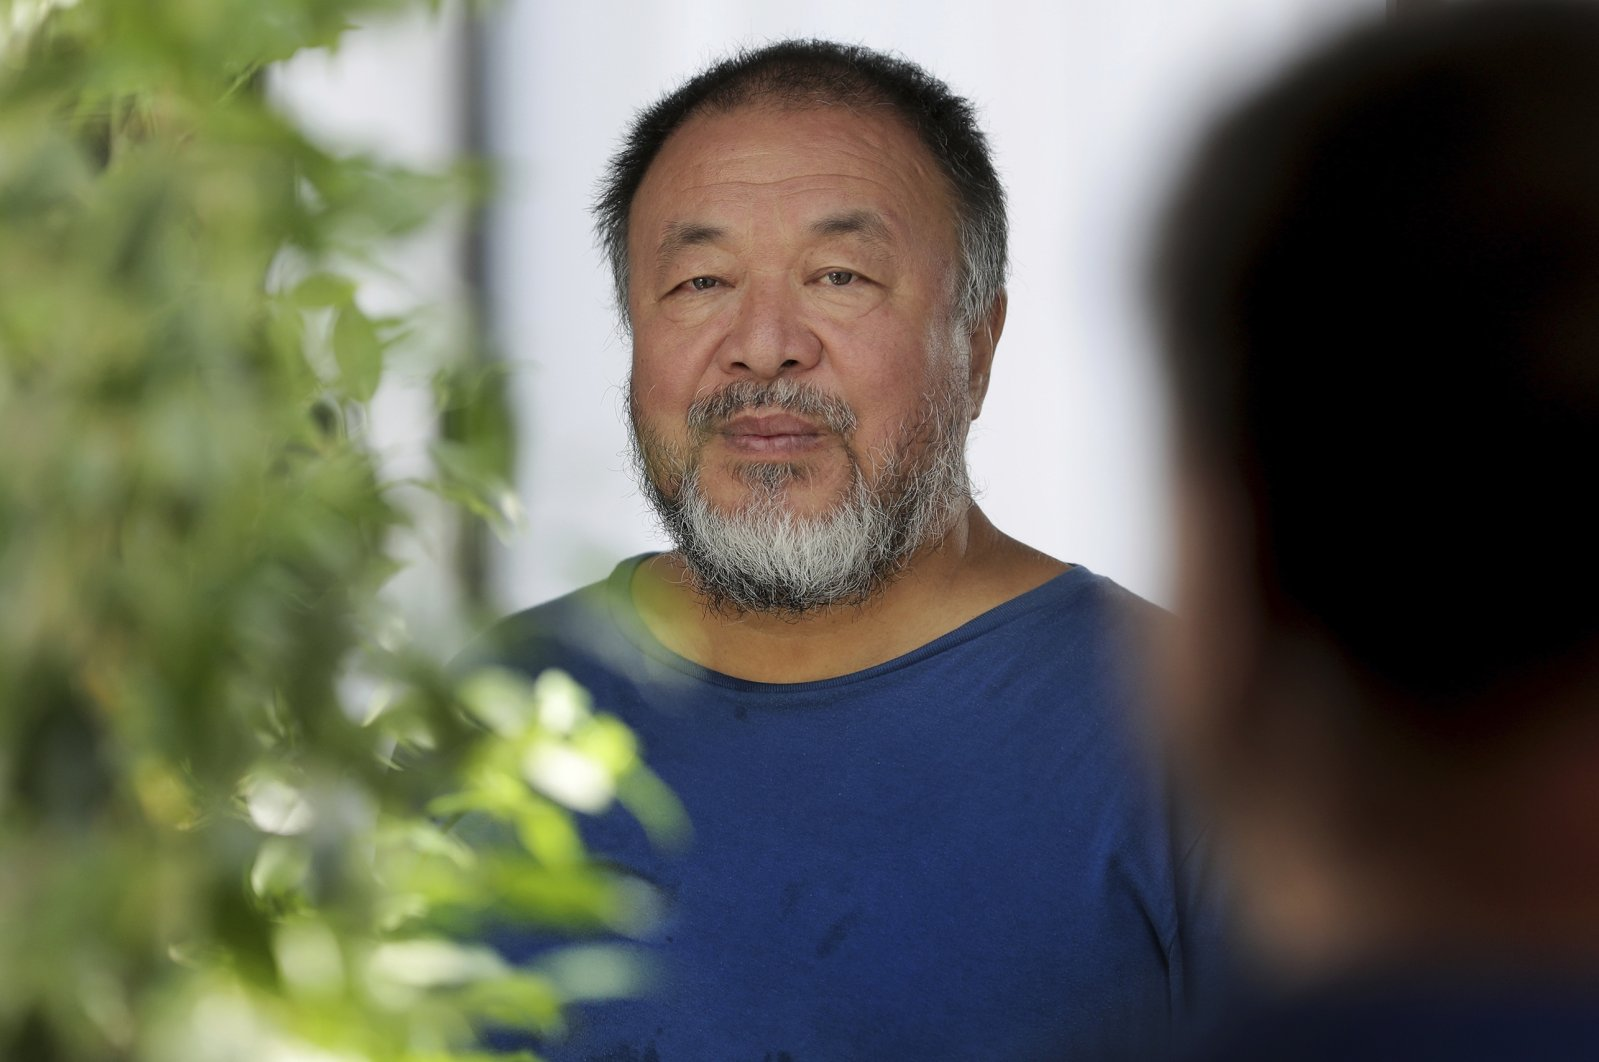 Chinese artist Ai Weiwei poses in front of a mirror for a photo after an interview with The Associated Press in Berlin, Germany, Monday, Aug. 12, 2019 (AP Photo)